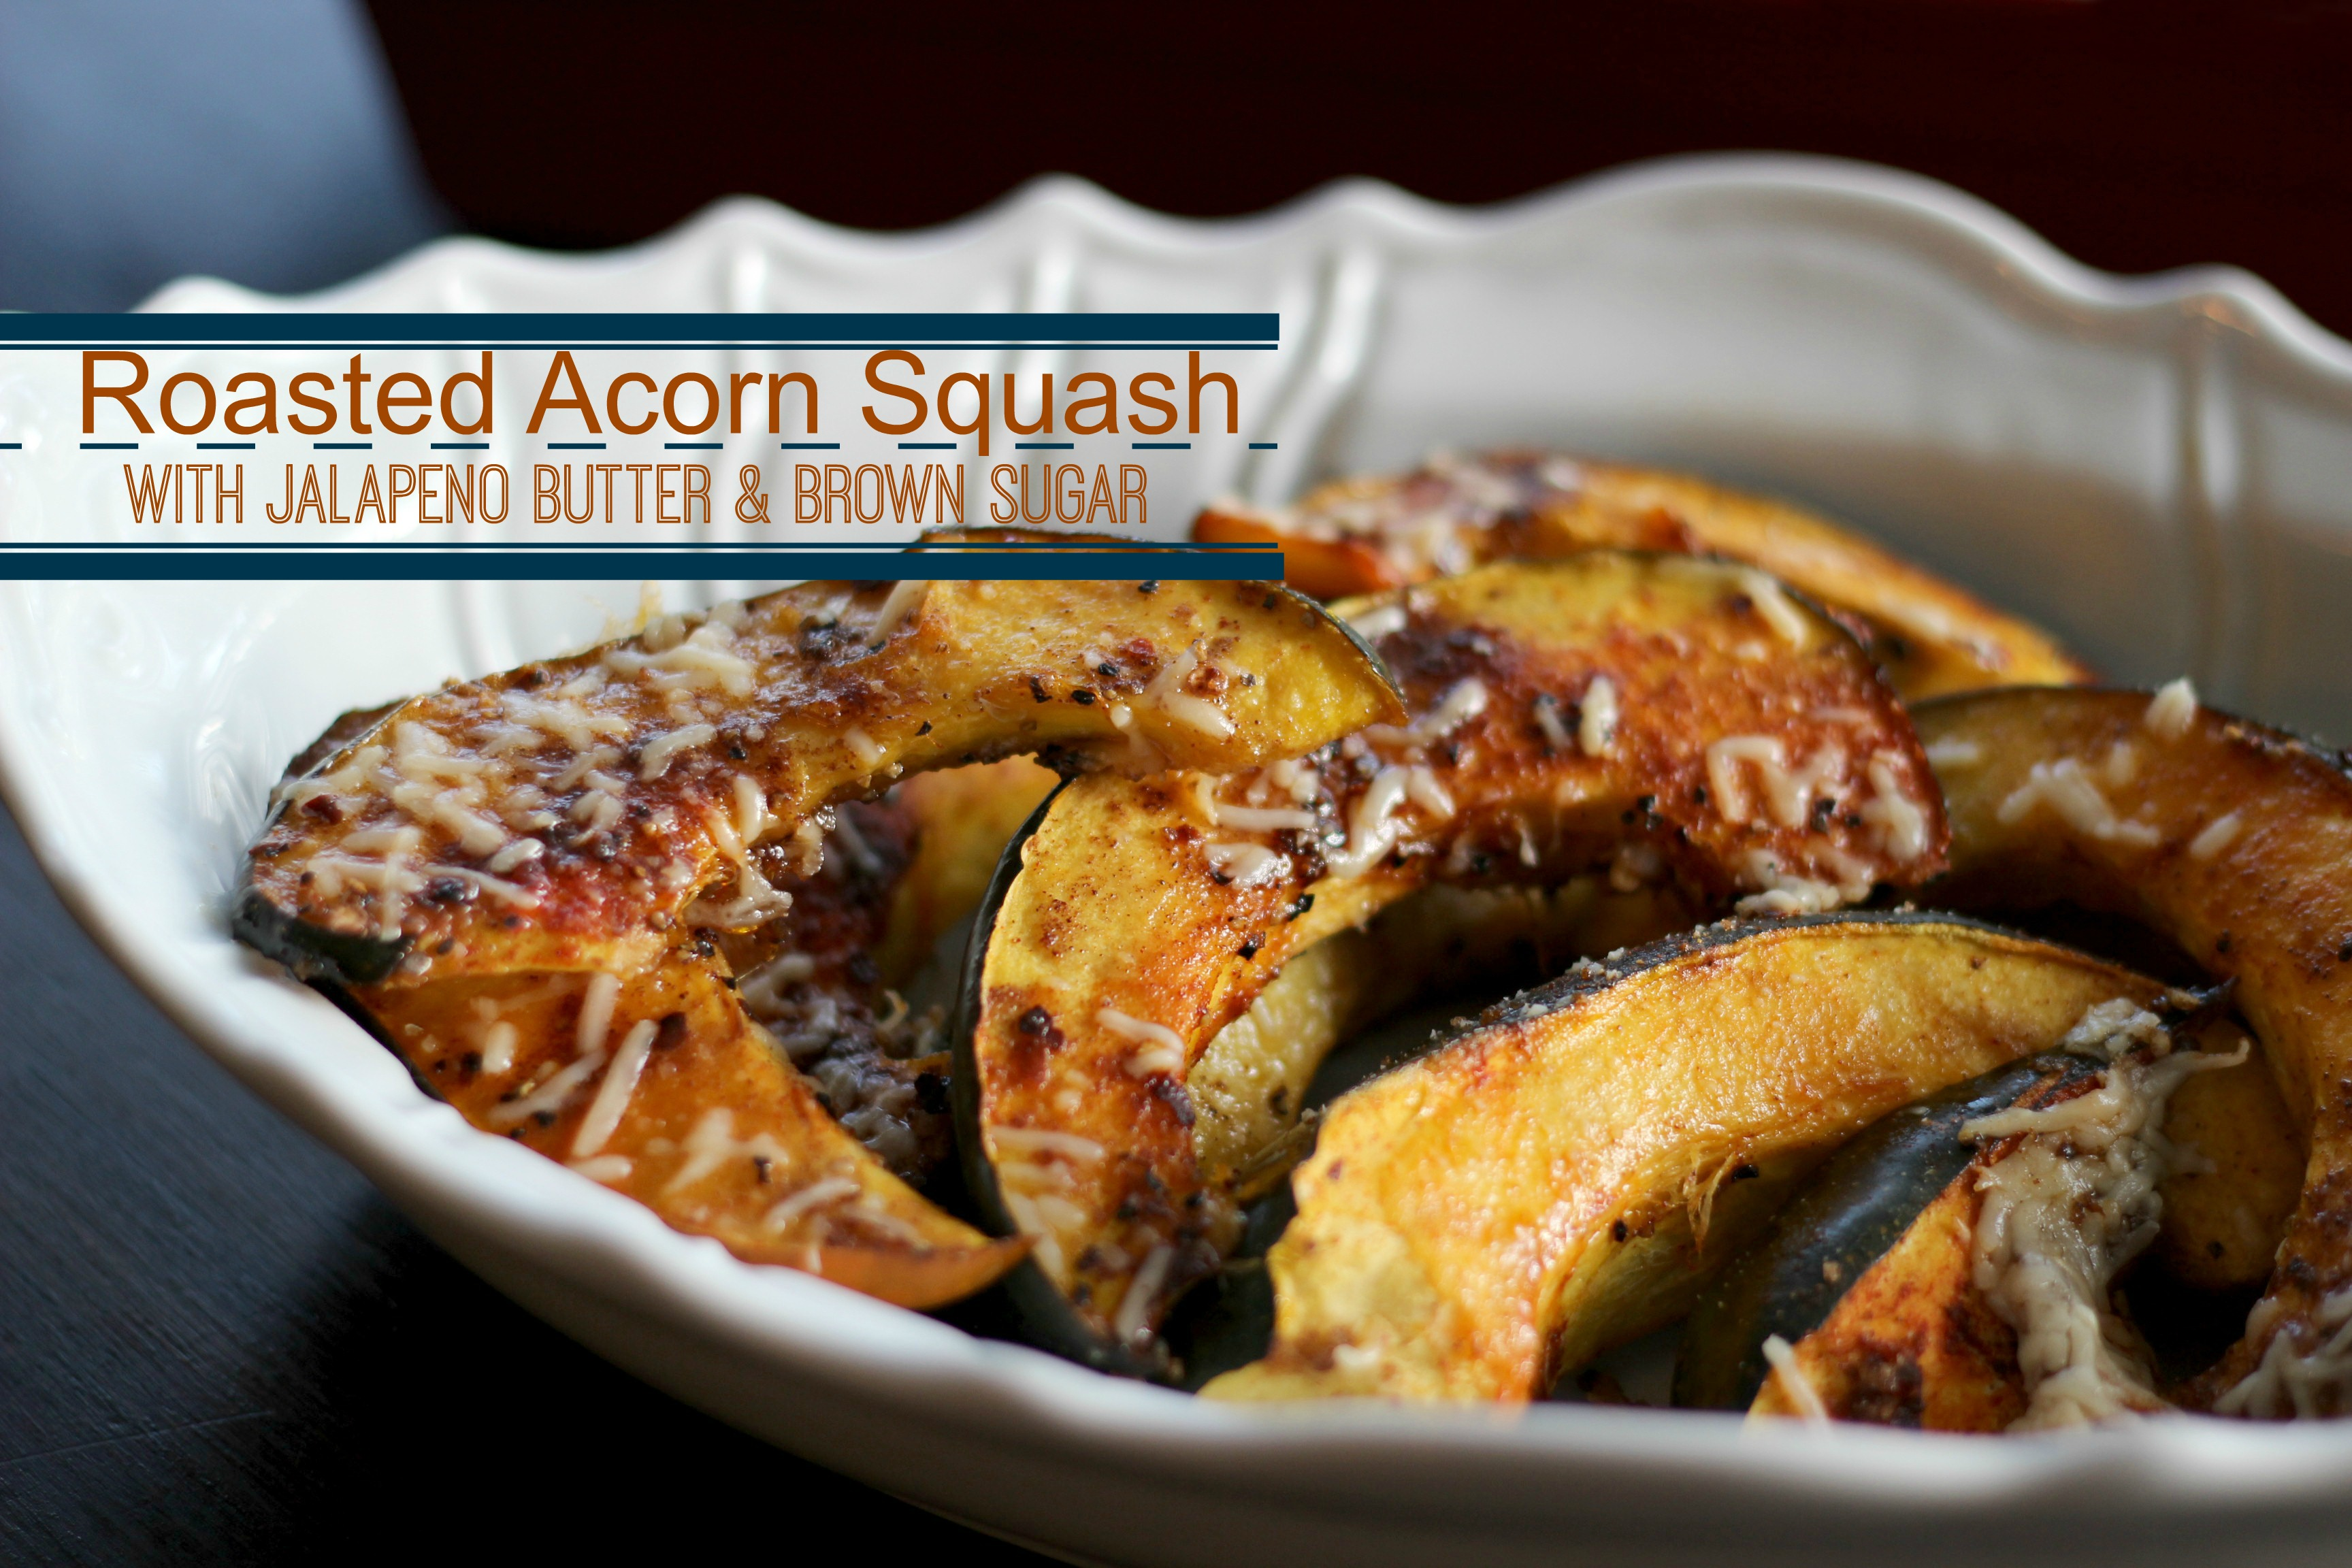 roasted-acorn-squash-with-jalapeno-butter-and-brown-sugar